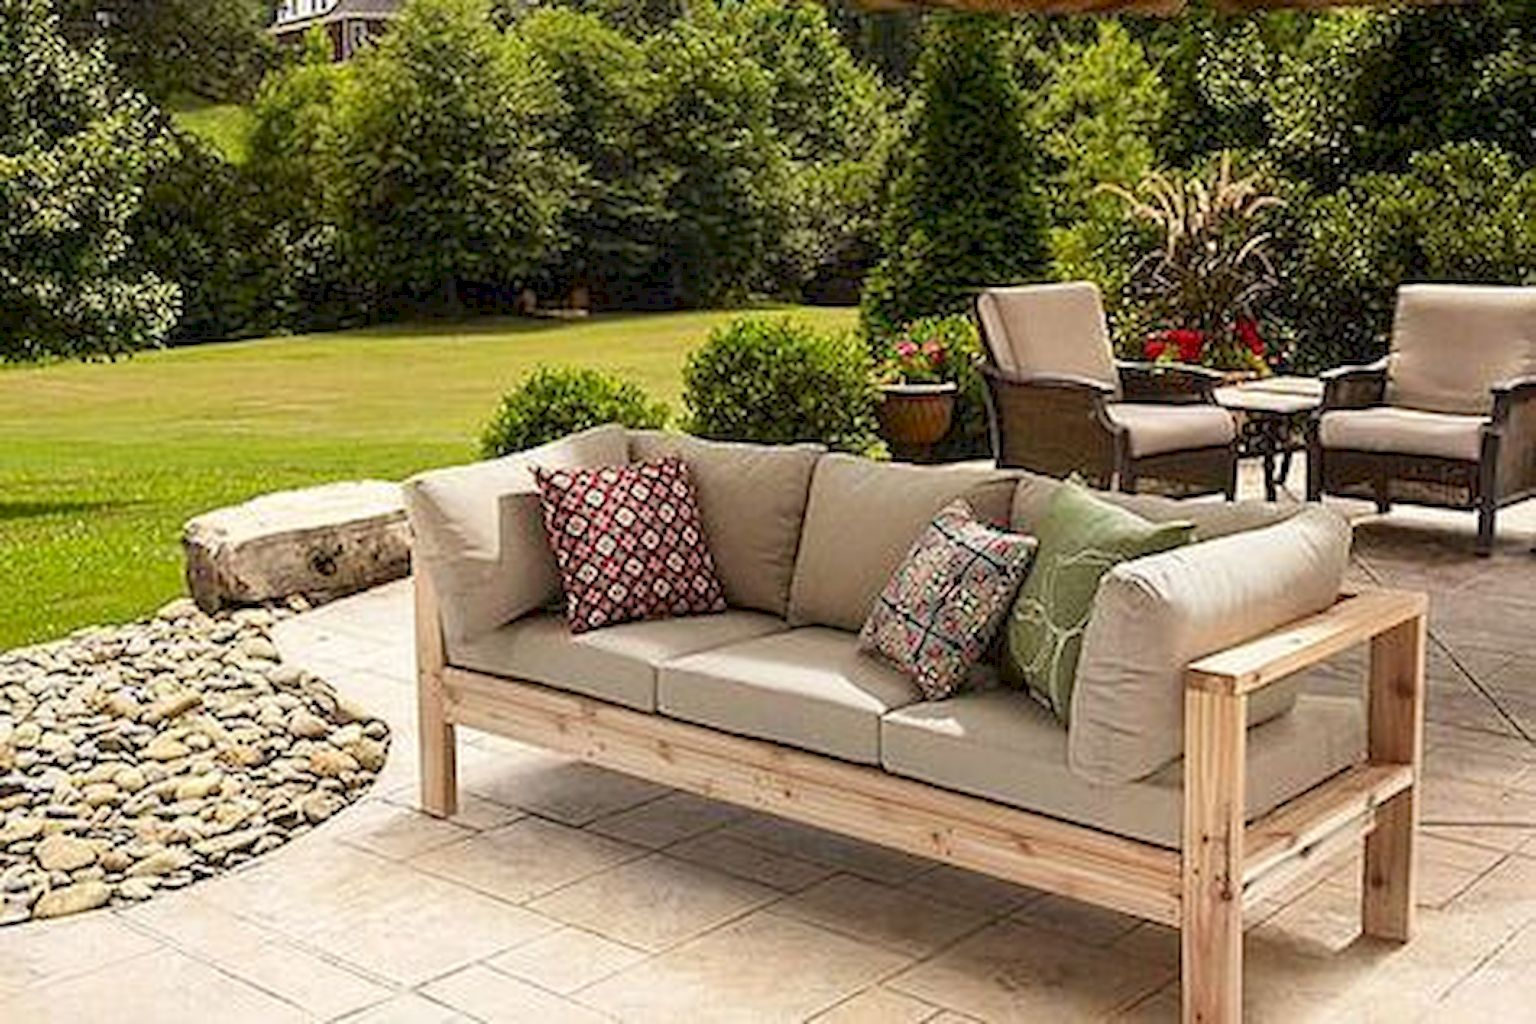 https://elonahome.com/wp-content/uploads/2018/07/Top-Summer-Furniture-for-Your-Outdoor-Space-3.jpg